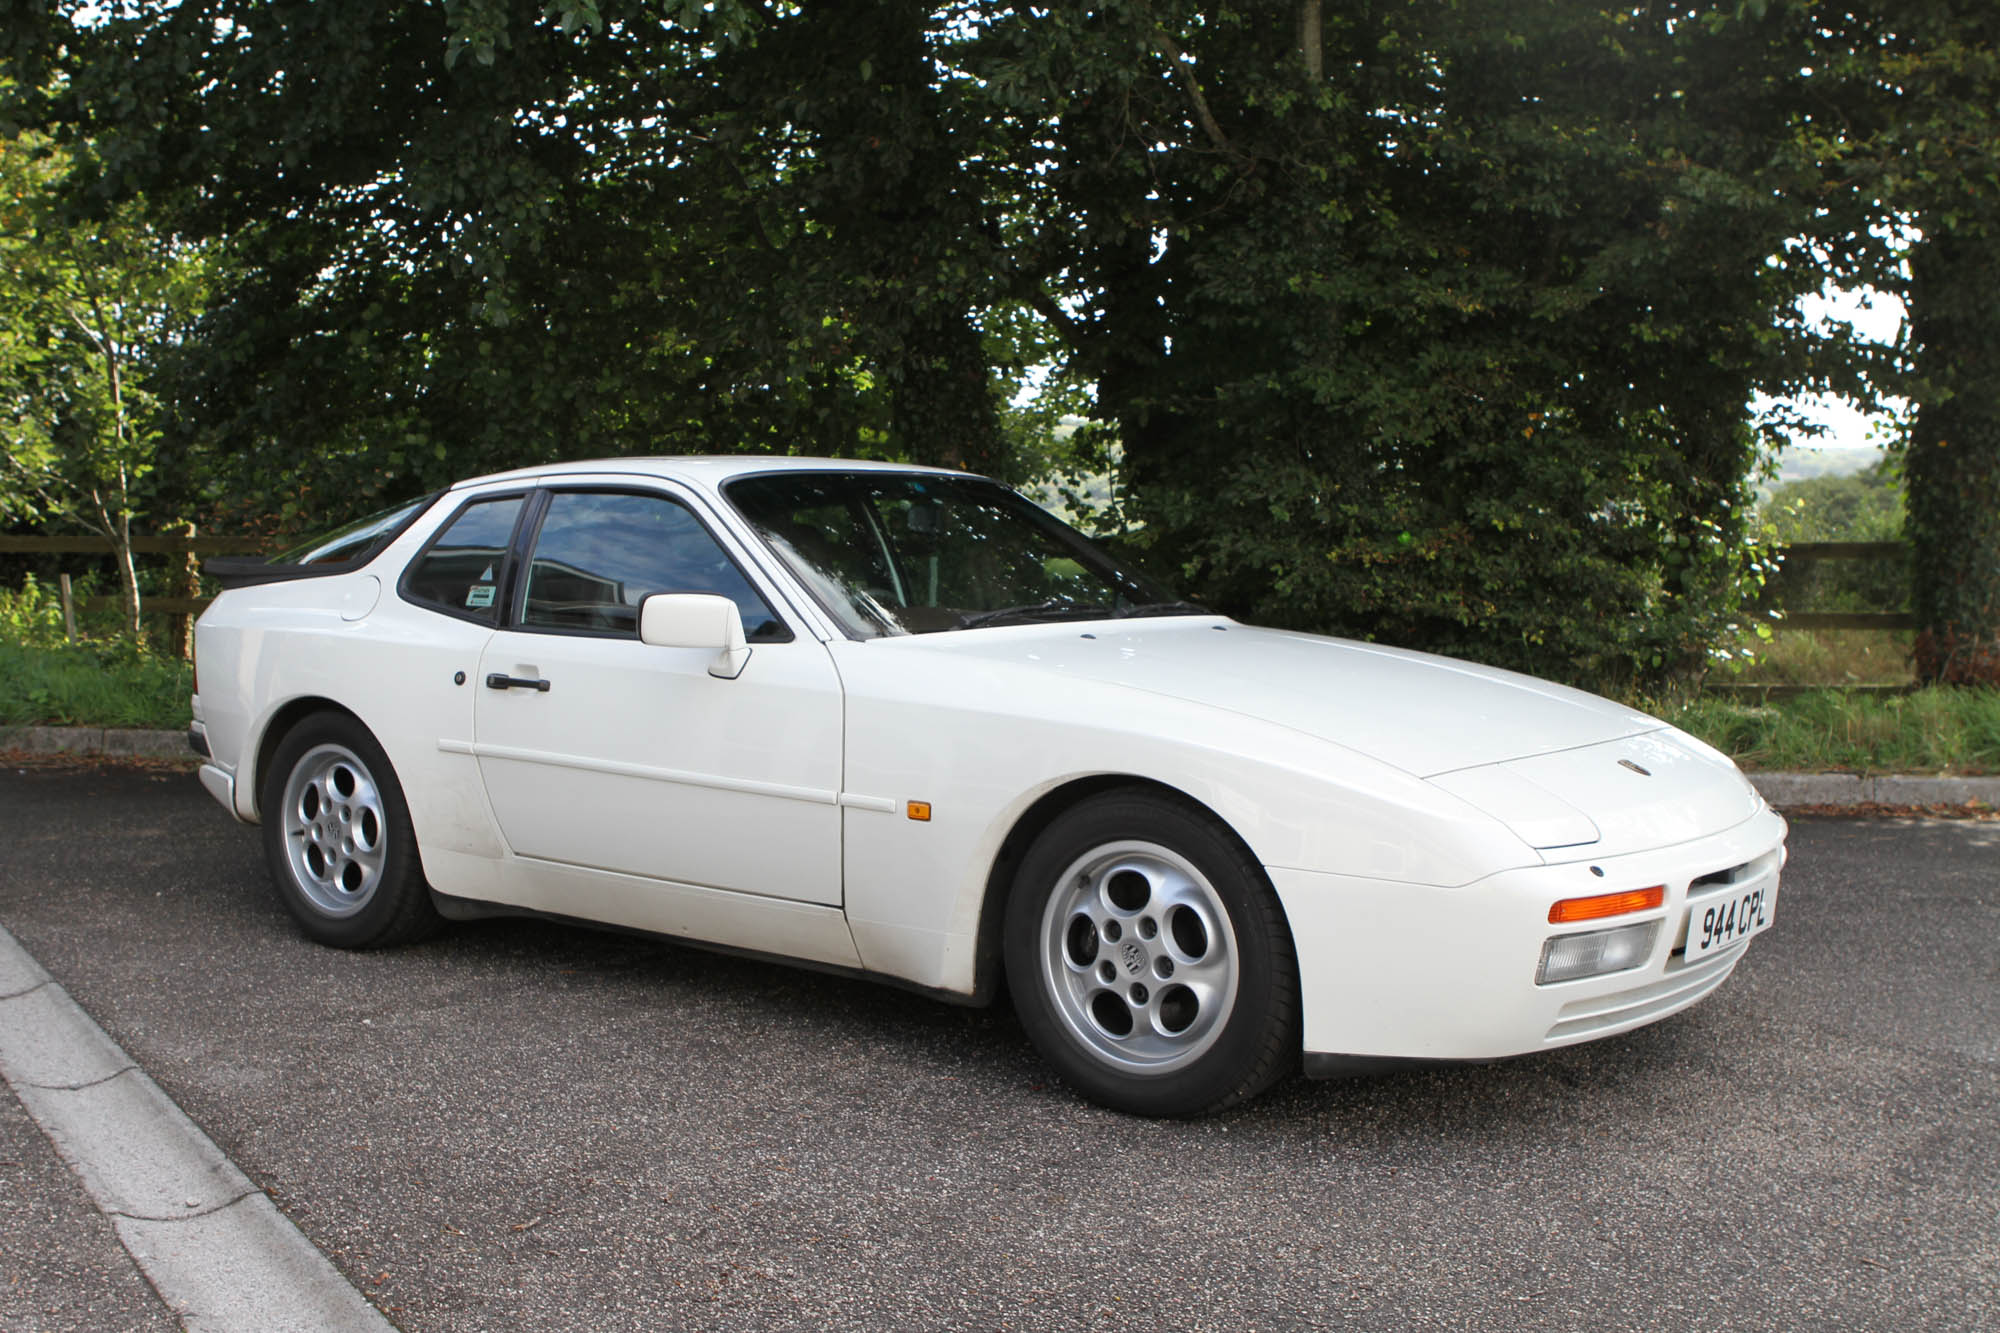 1987 PORSCHE 944 TURBO - 1 OWNER FROM NEW